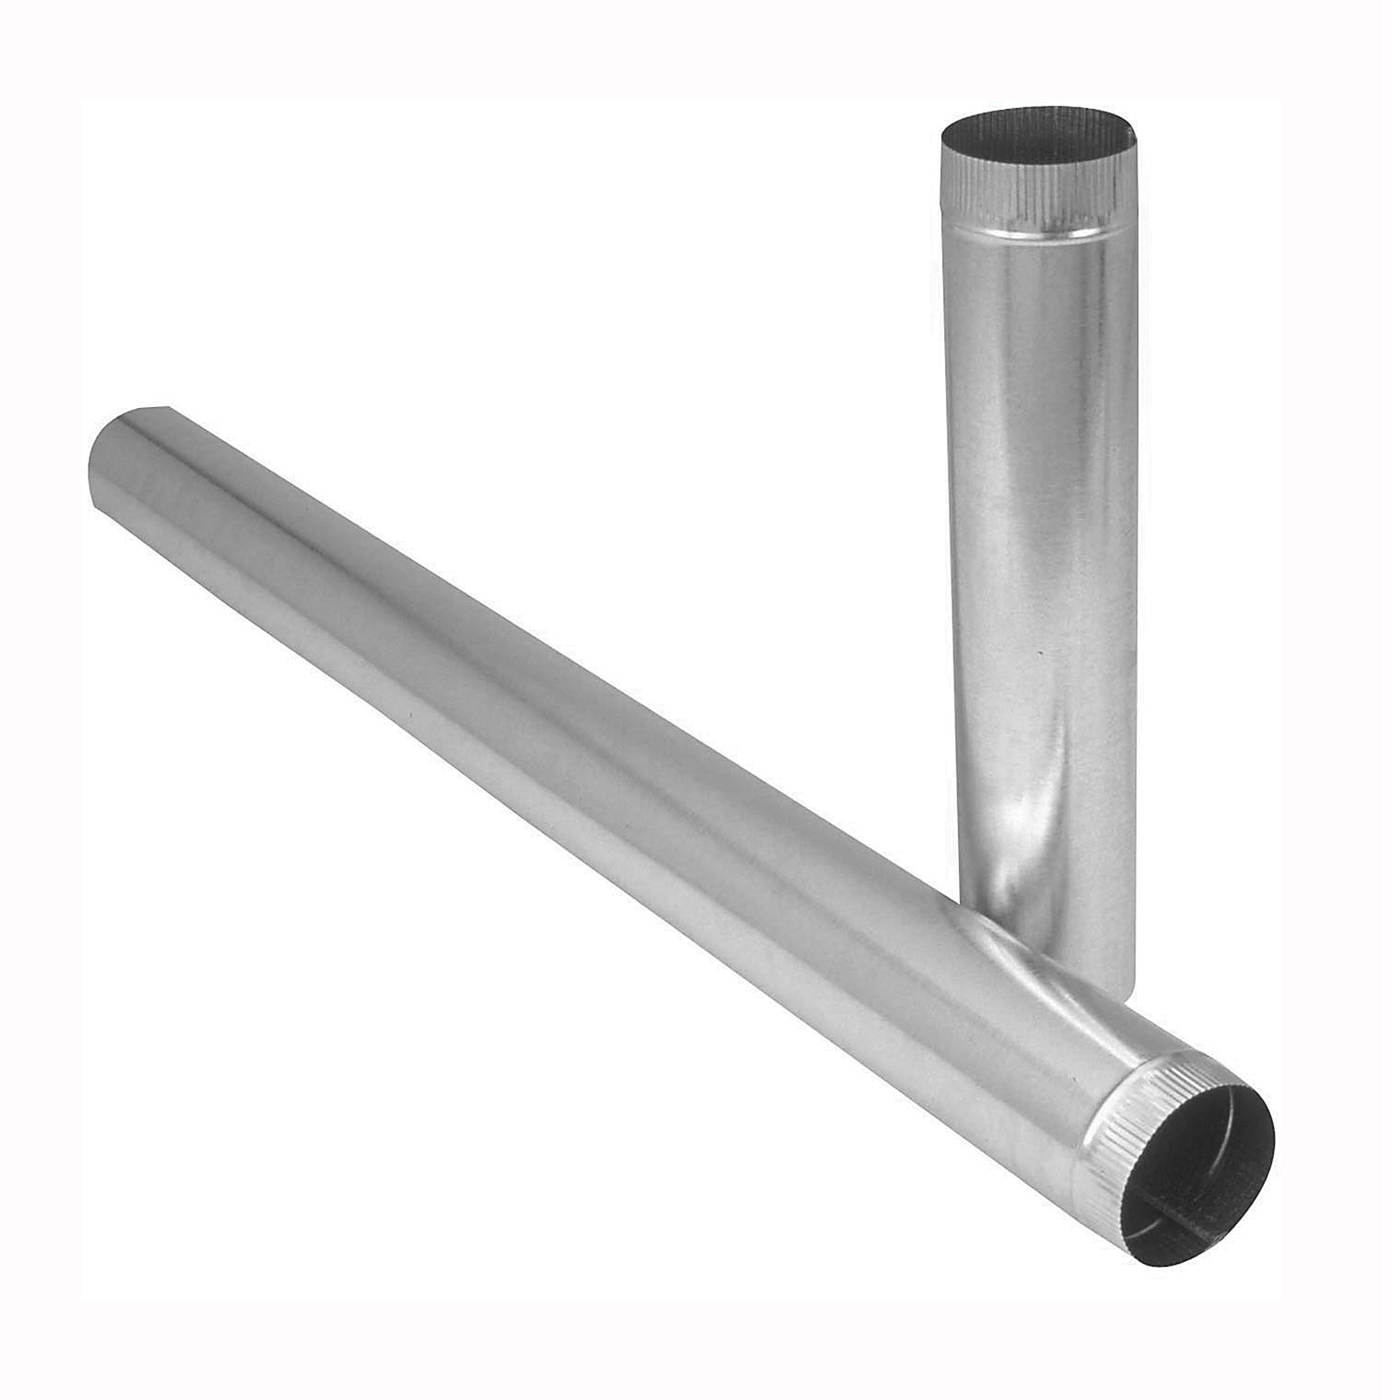 Picture of Imperial GV1336 Duct Pipe, 8 in Dia, 24 in L, 30 Gauge, Galvanized Steel, Galvanized